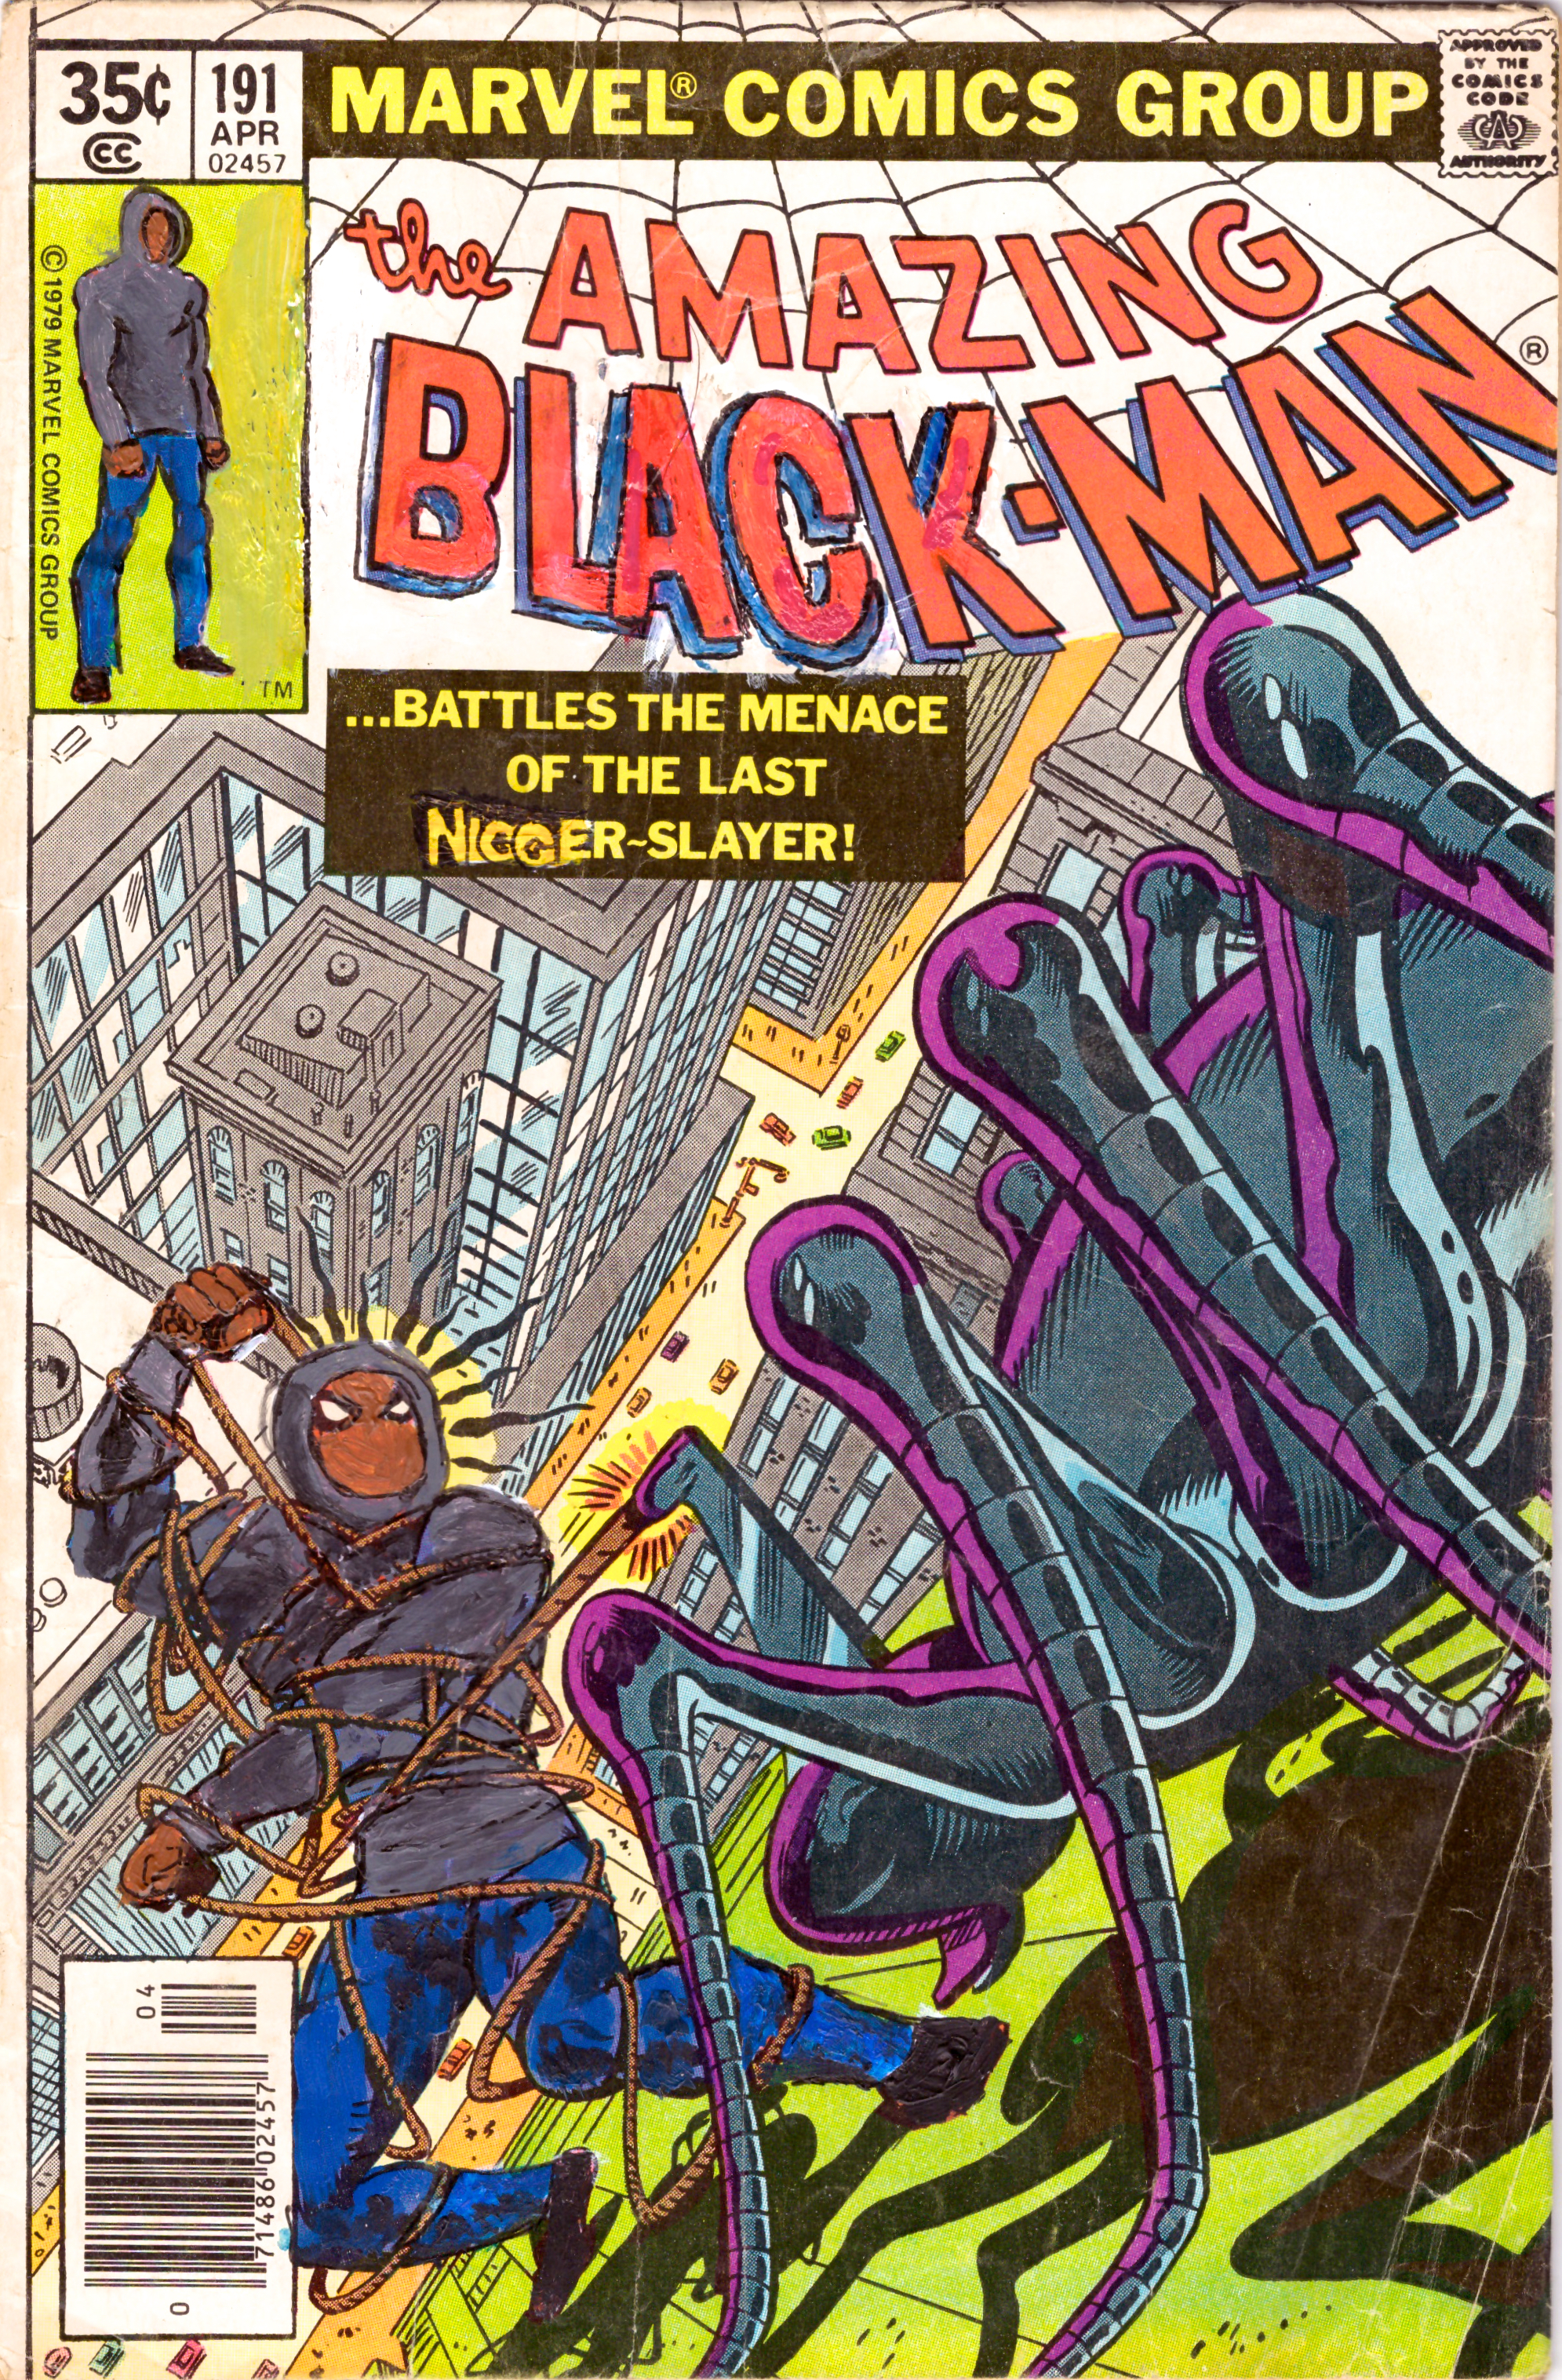 Kumasi J. Barnett  The Amazing Black-Man #191  2019 Acrylic, marker, pen and oil marker on comic book 9 3/4h x 6 1/4w inches KB-079